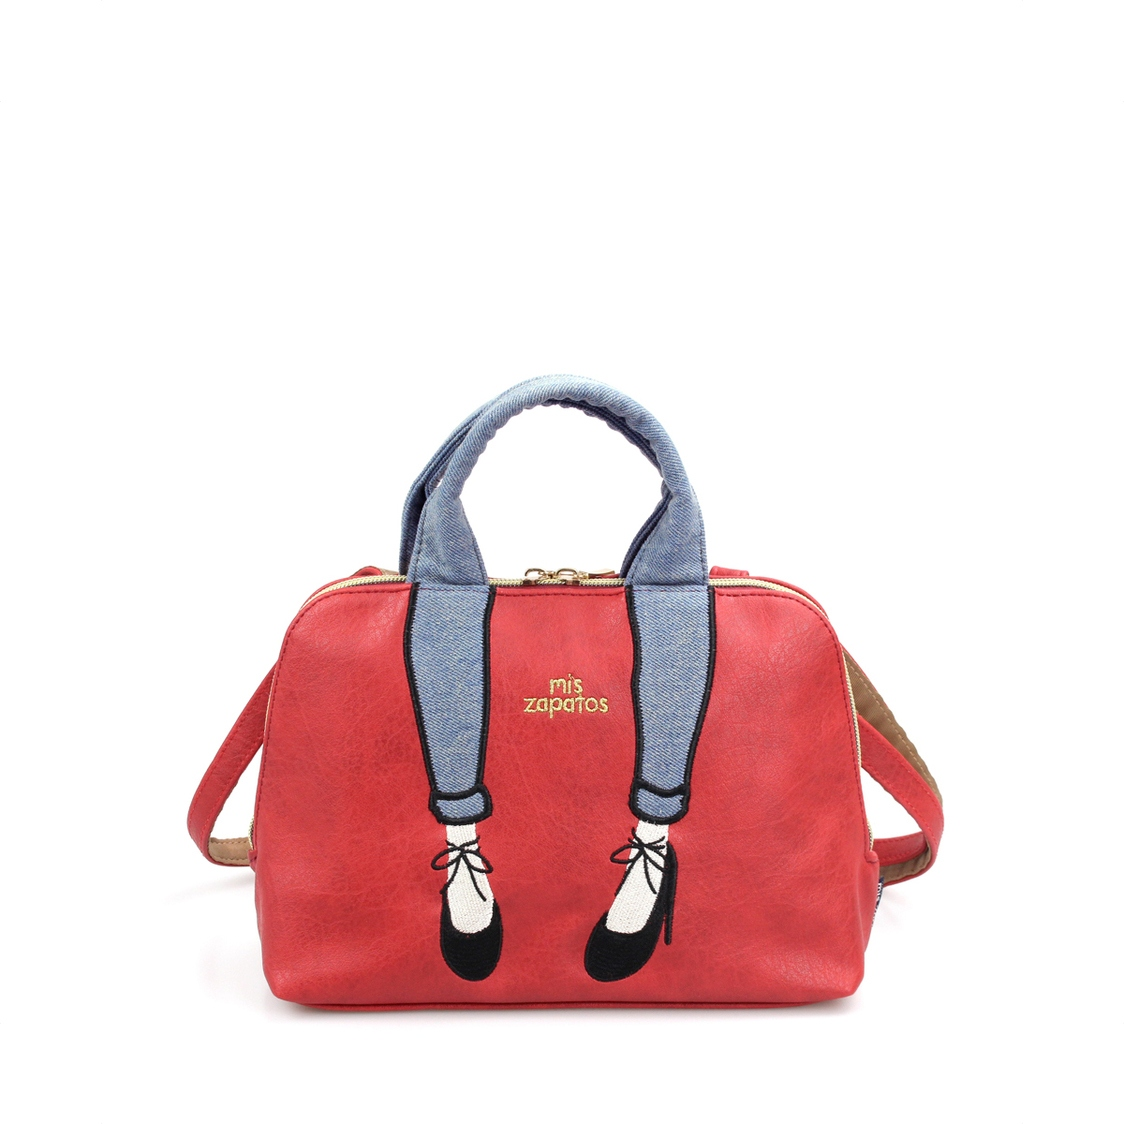 2-Way Use Jeans With High Heels Slingbag Red